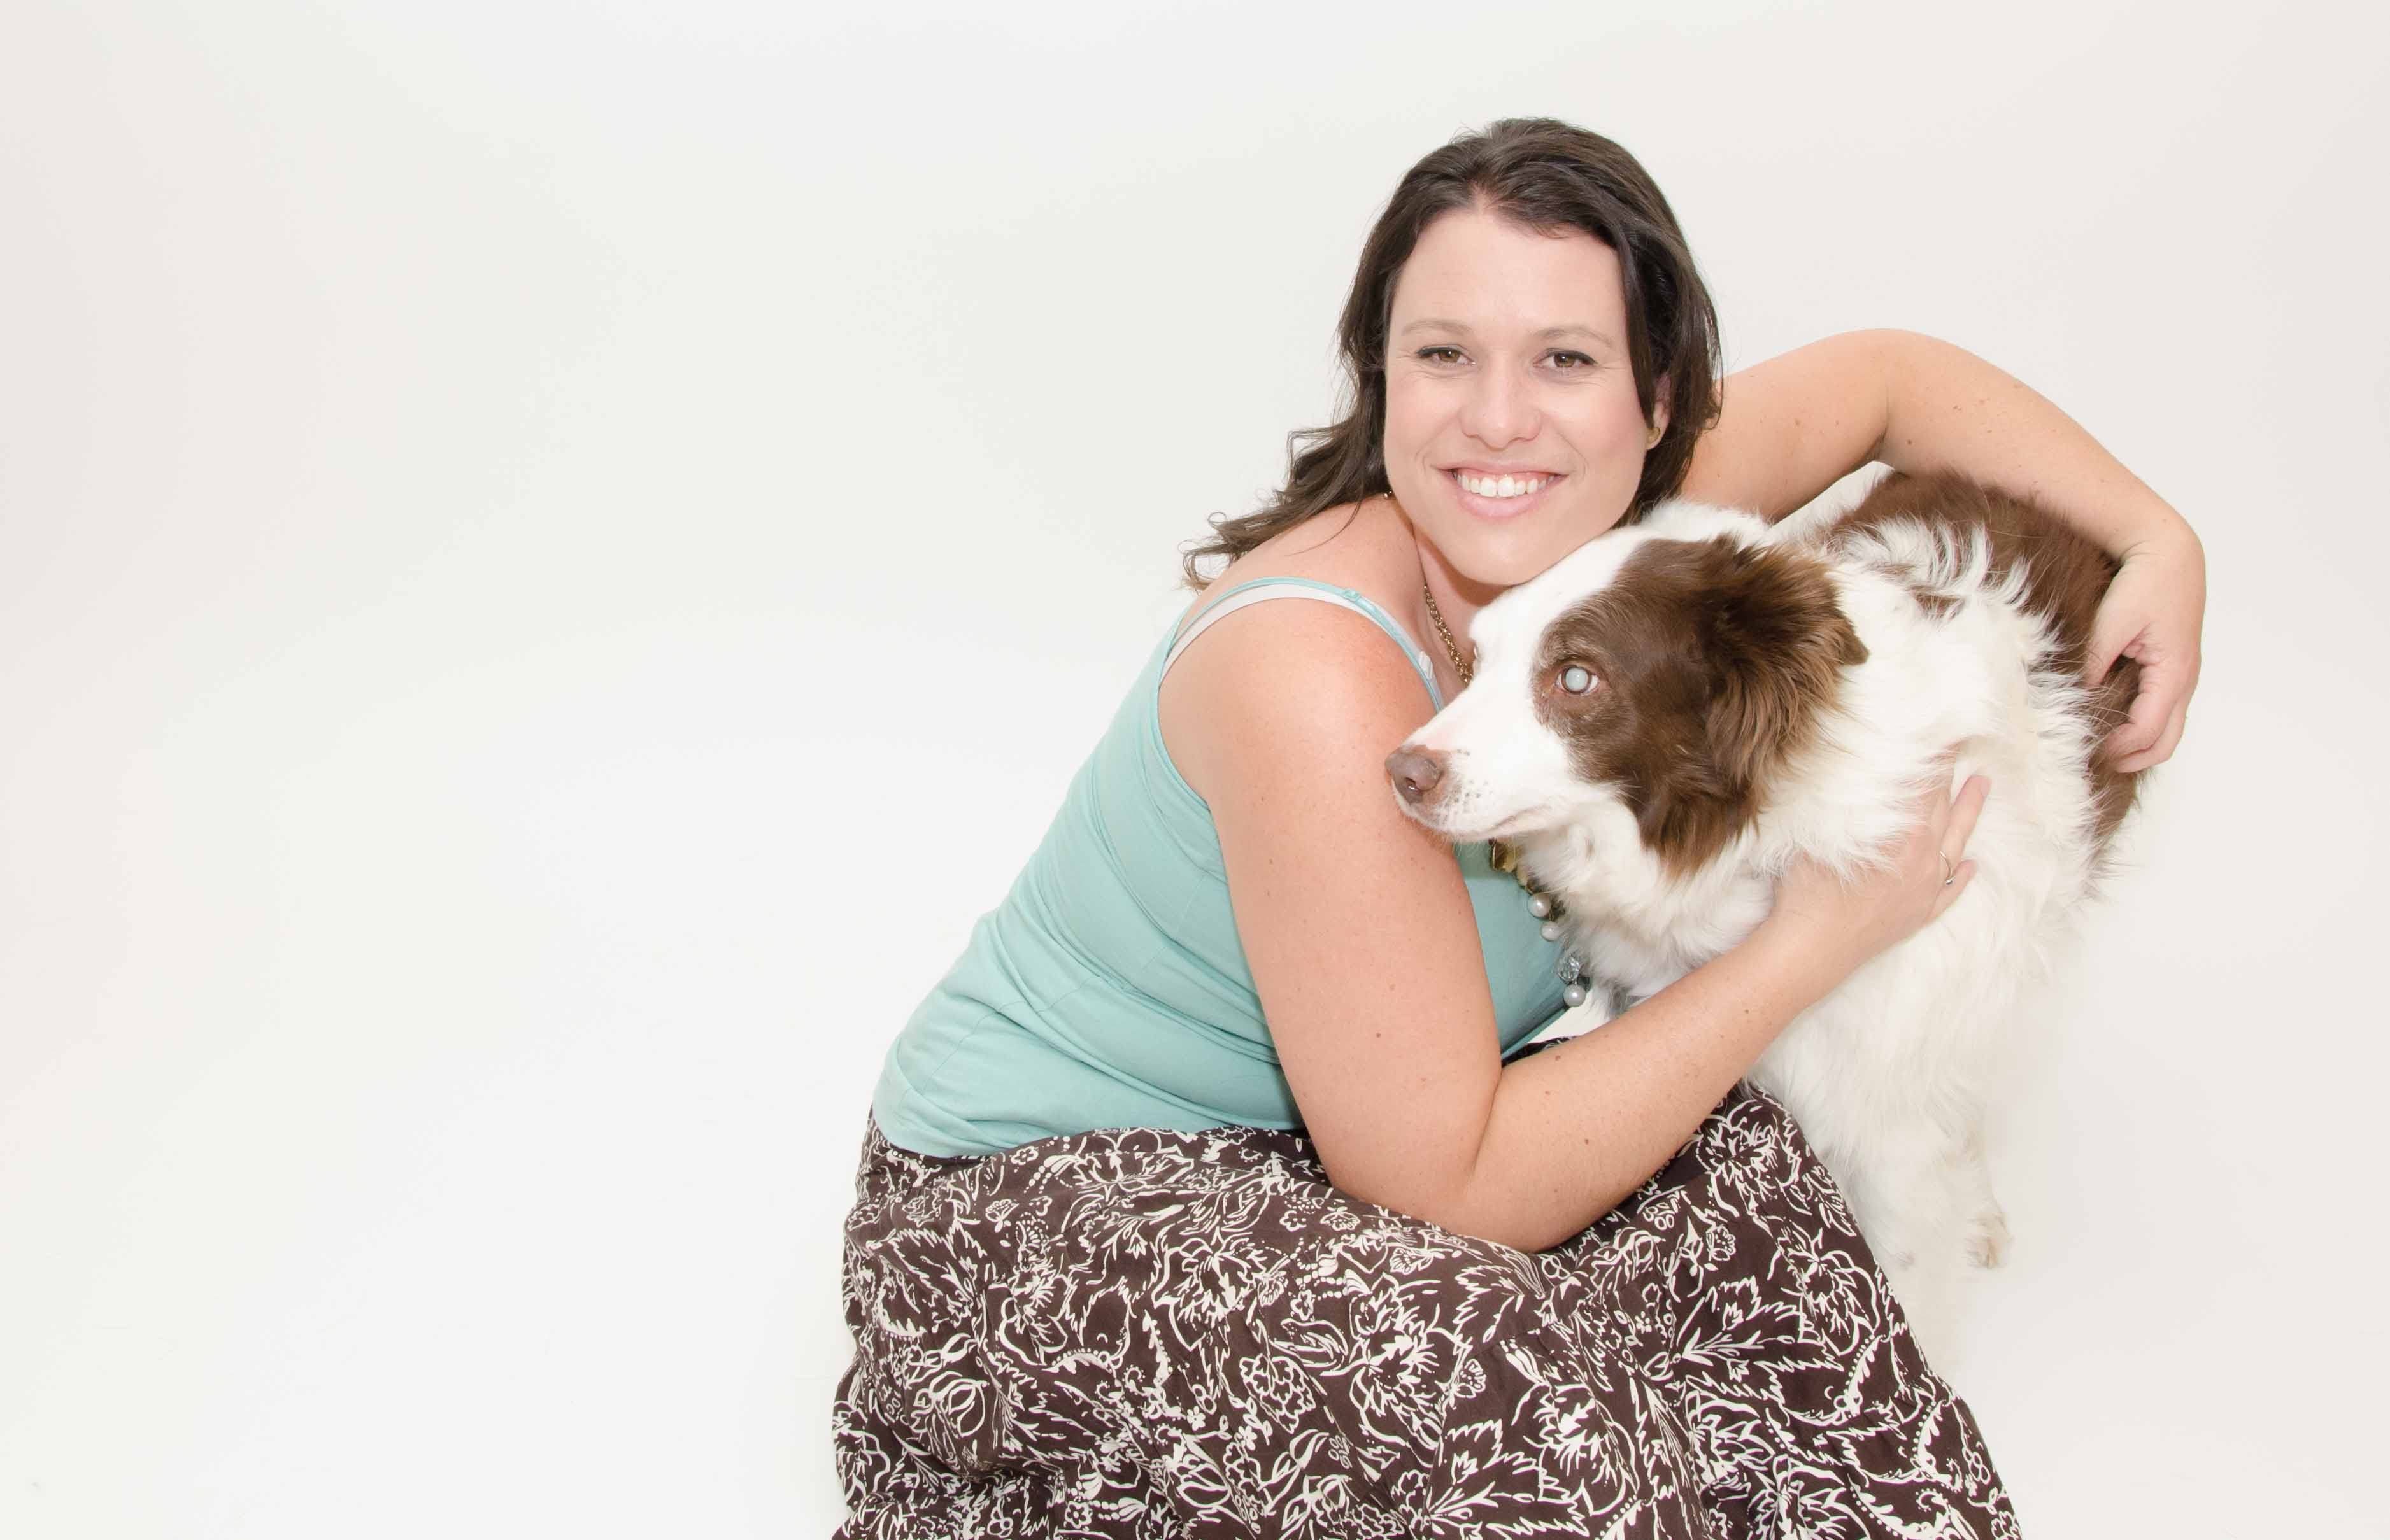 Phoenix Arizona Pet photographer